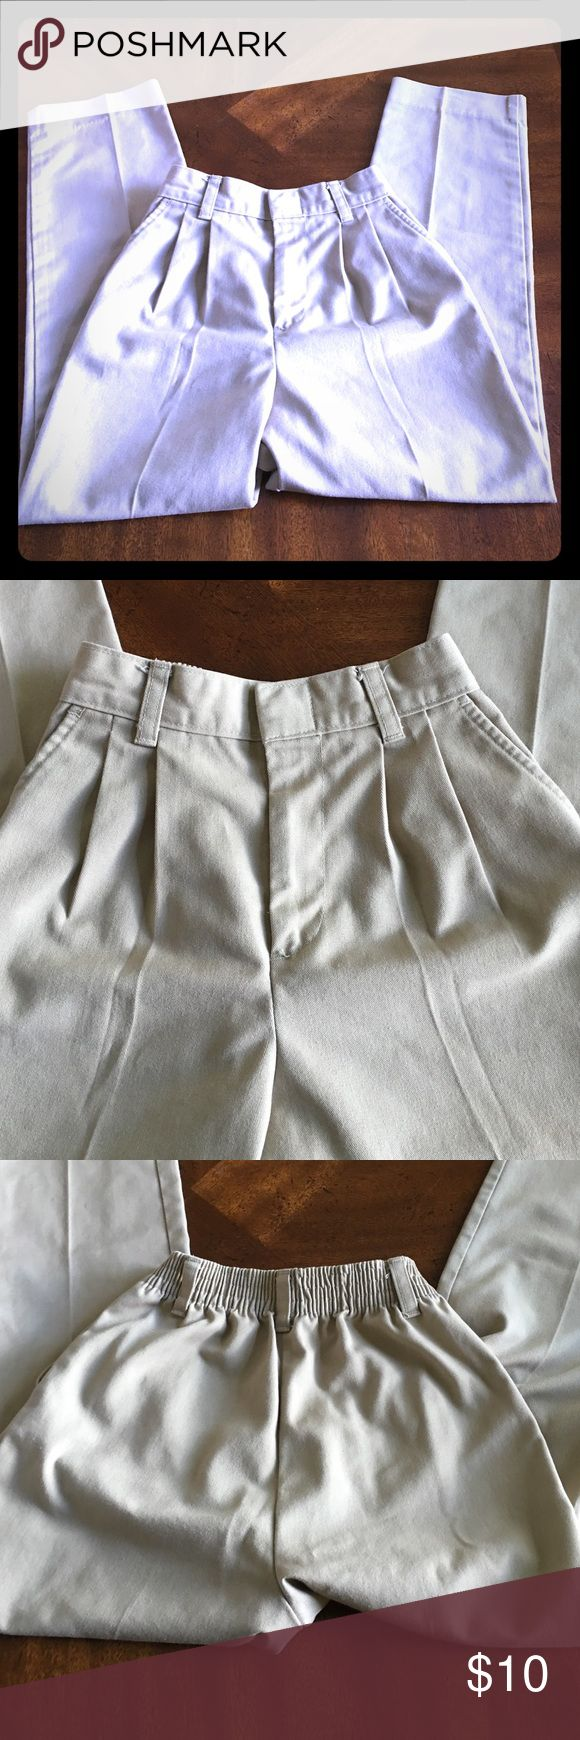 Uniform pants for school Uniform pants for school. Khaki color. Excellent condition. Comes from a 🚫🐶🐱 and 🚭 home. Will 📬 next day. Bundle and save money Bottoms